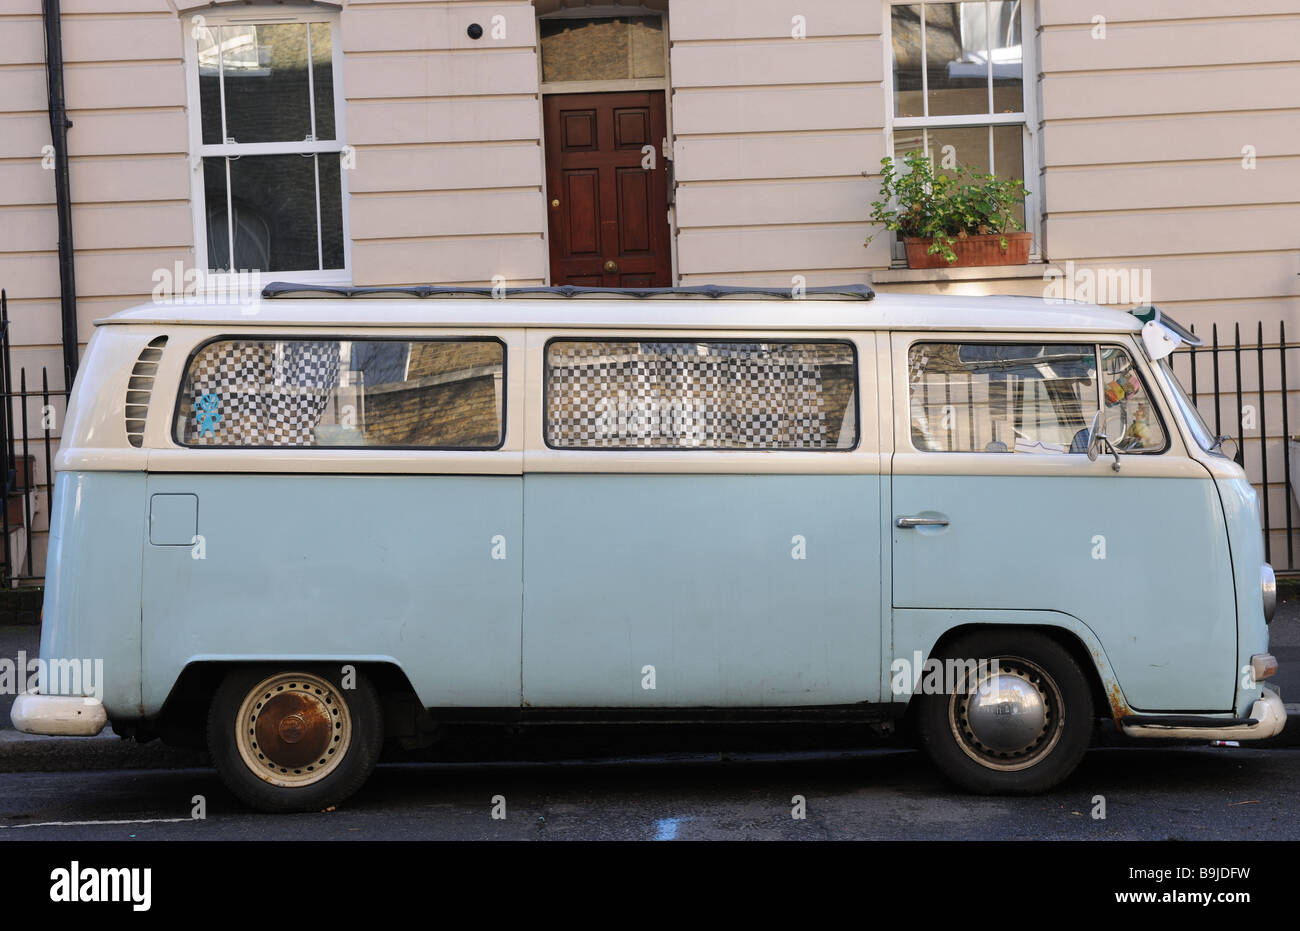 Image taken of a Volkswagen Camper parked in the street in London. - Stock Image